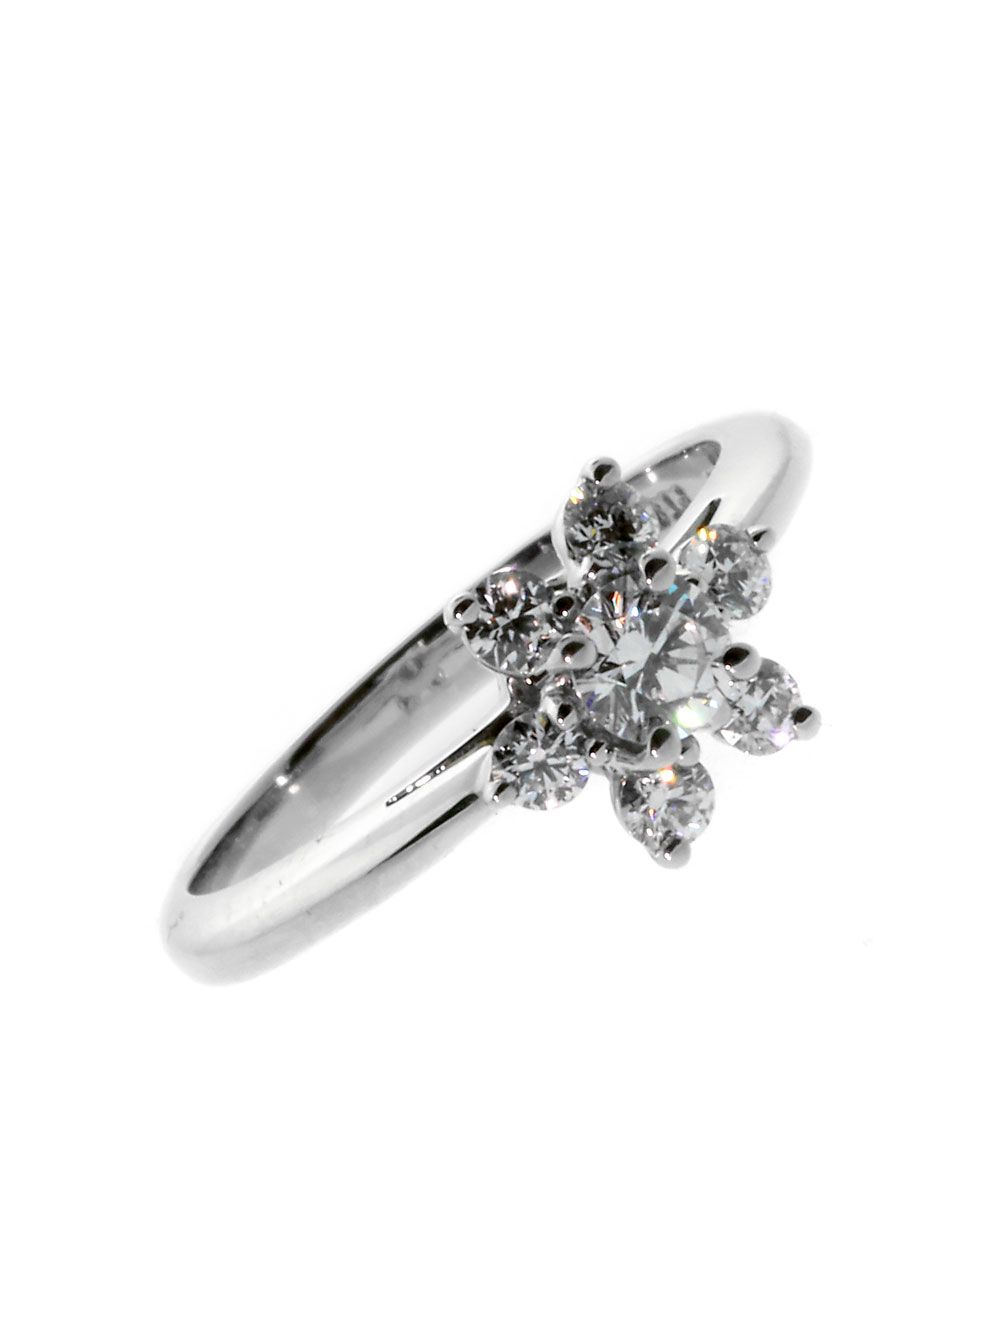 1411d968e You're looking at a stunning Tiffany & Co Flower Diamond Ring. About ...